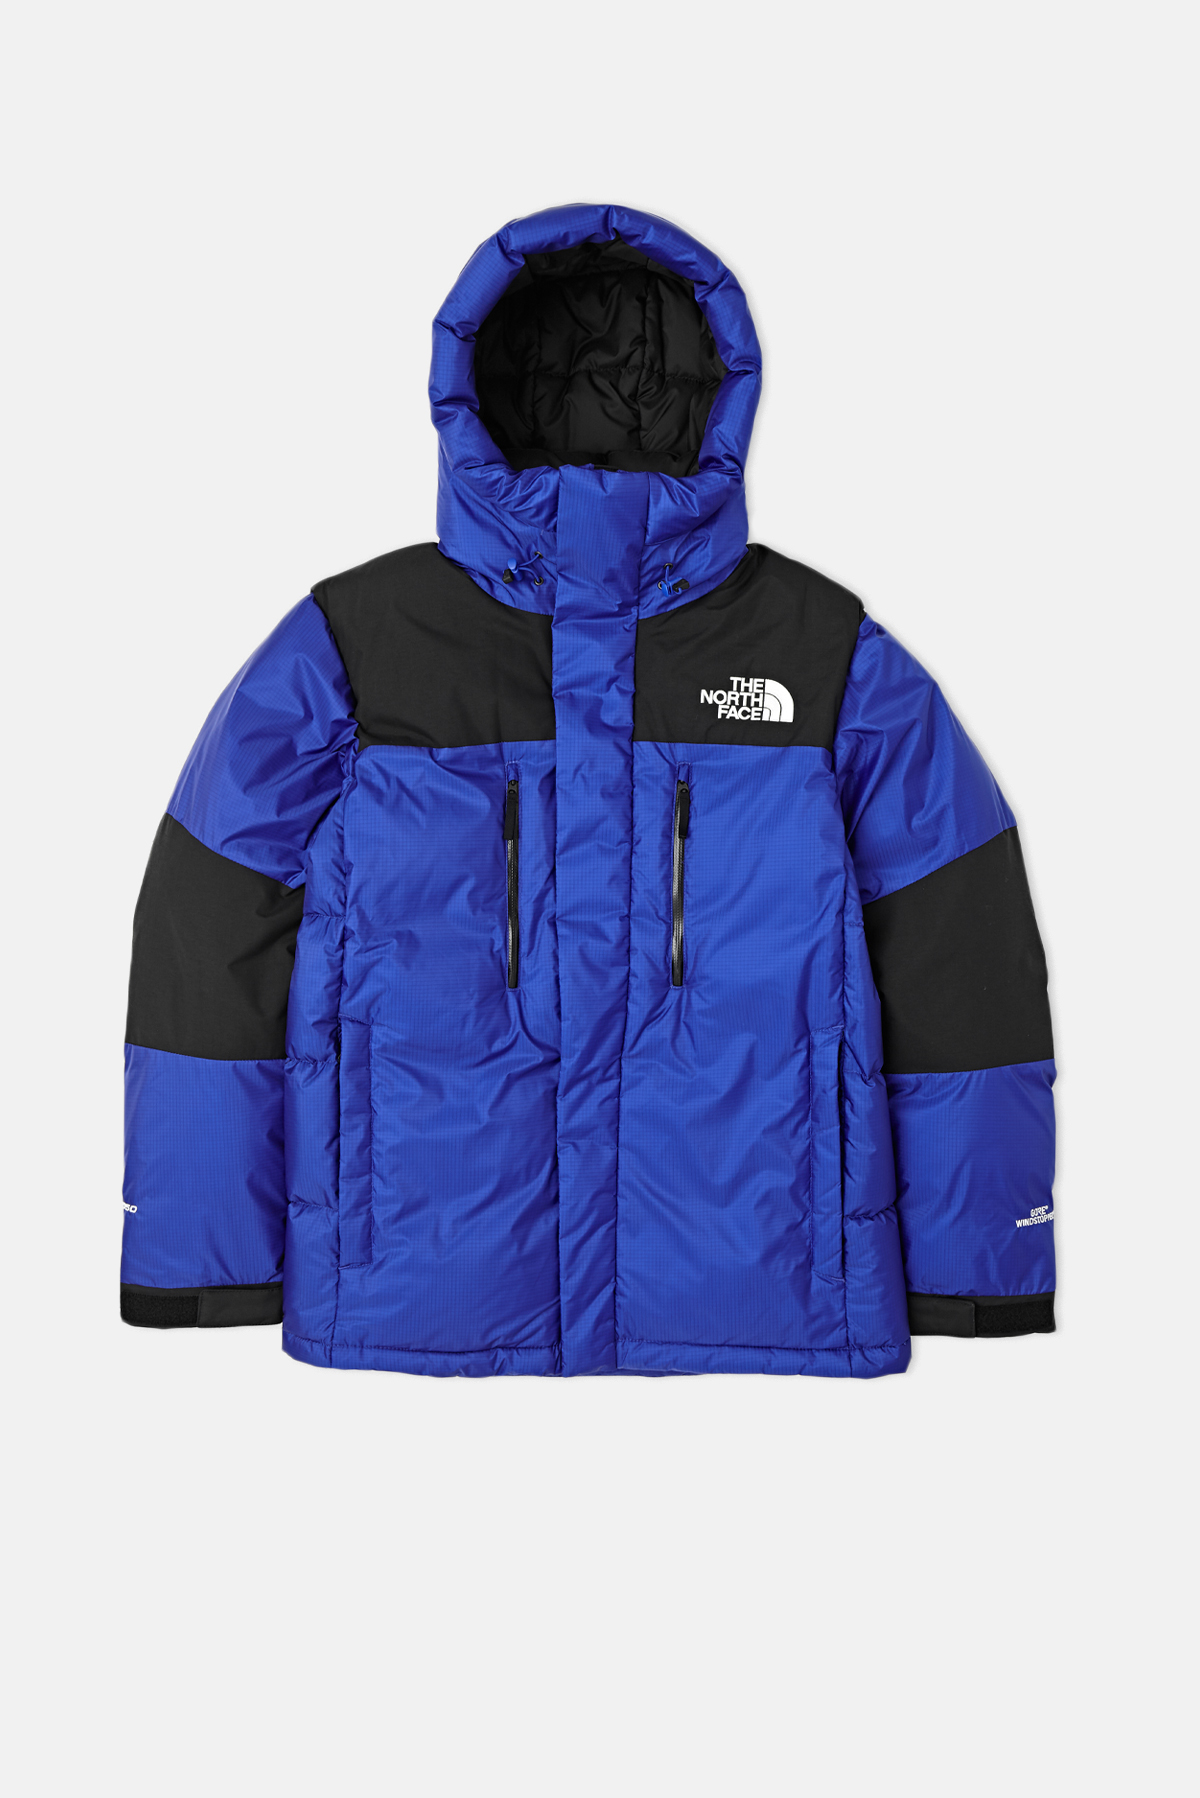 Blue Wing Teal Porcelain The North Face Capsule Fantasy Ridge Mens Jacket Coat